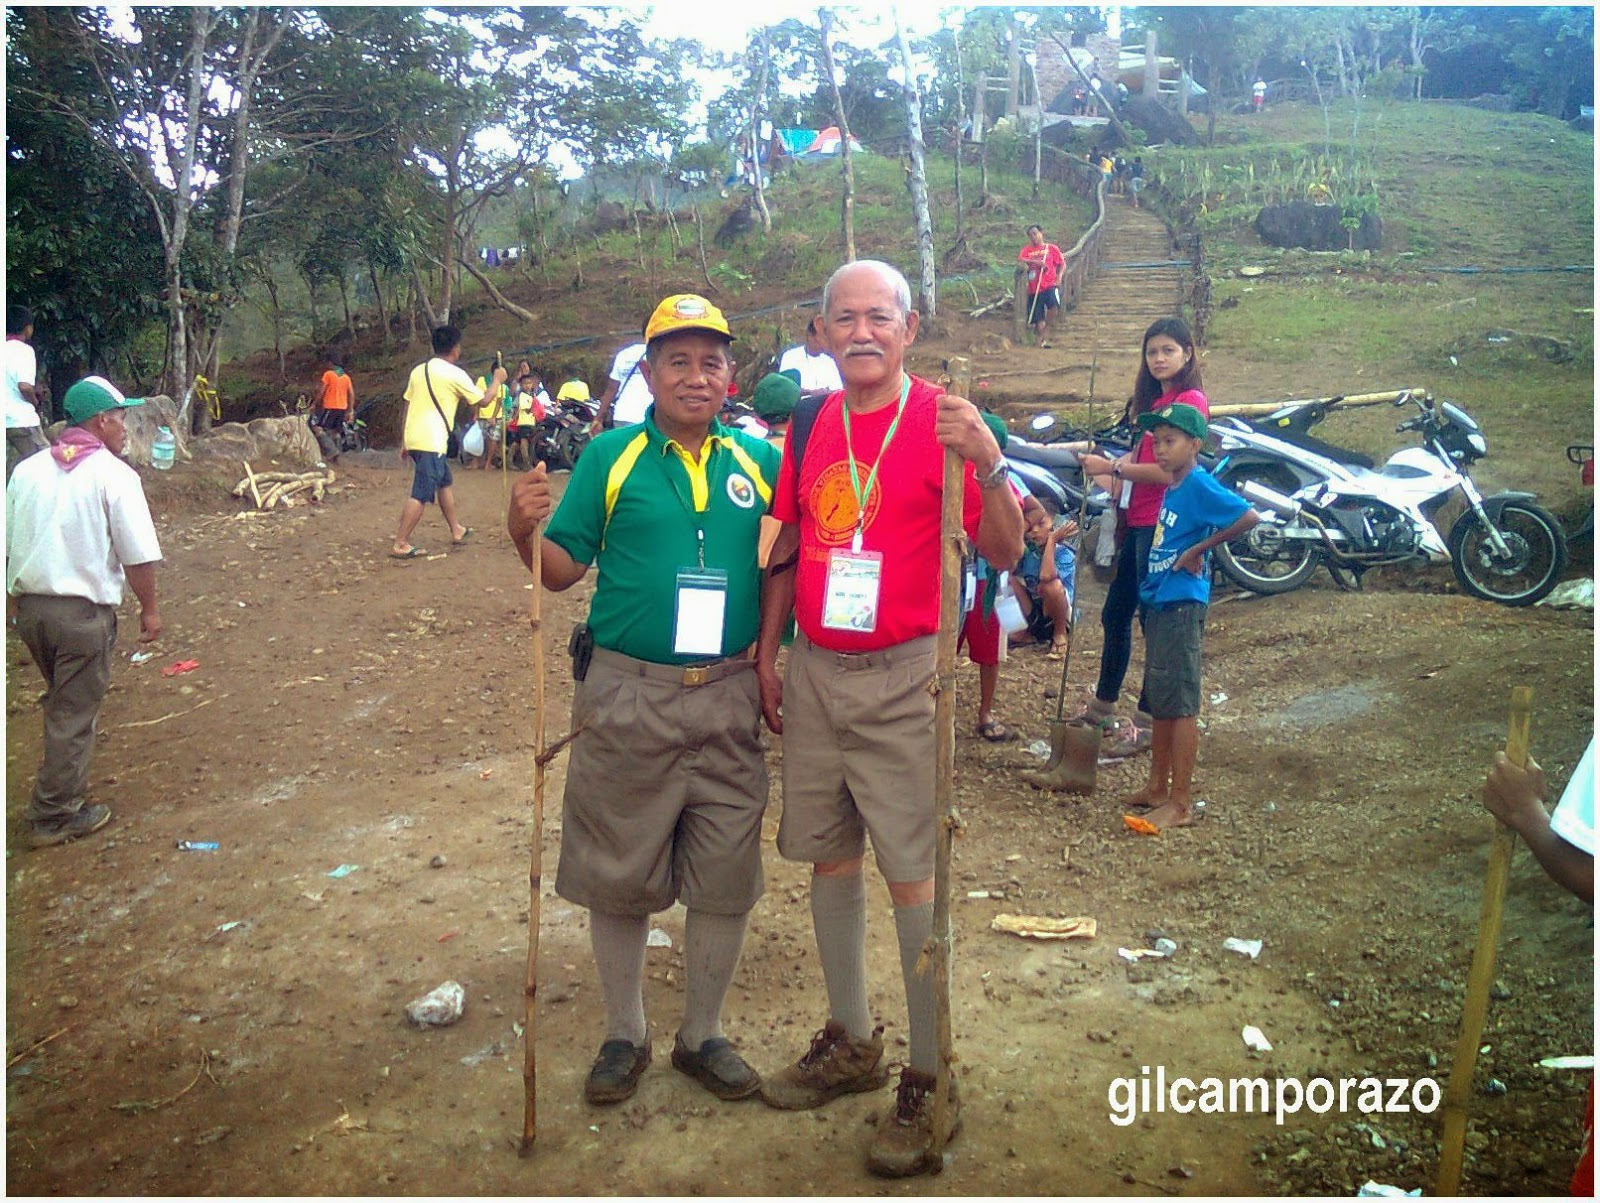 Scouter Garredo and me at the main entrance of the camp site